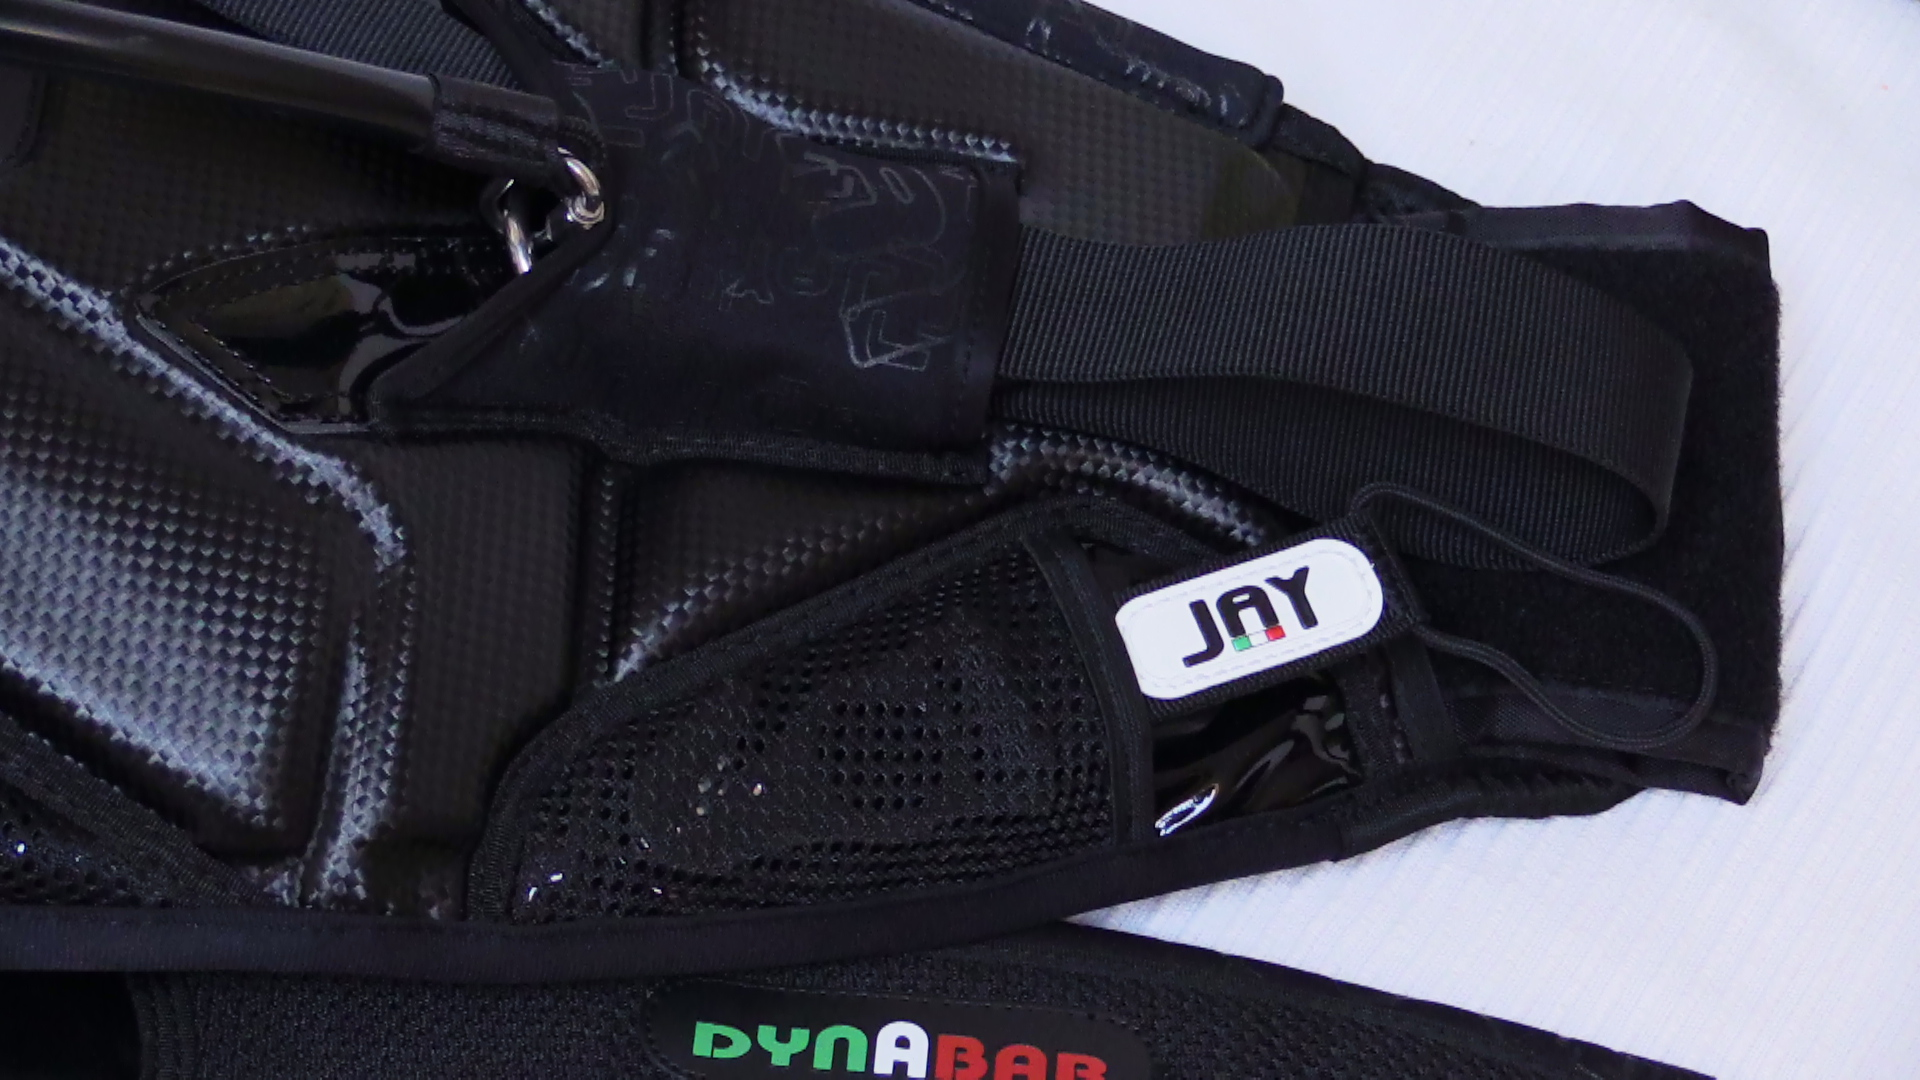 JAY XT harness knife.JPG